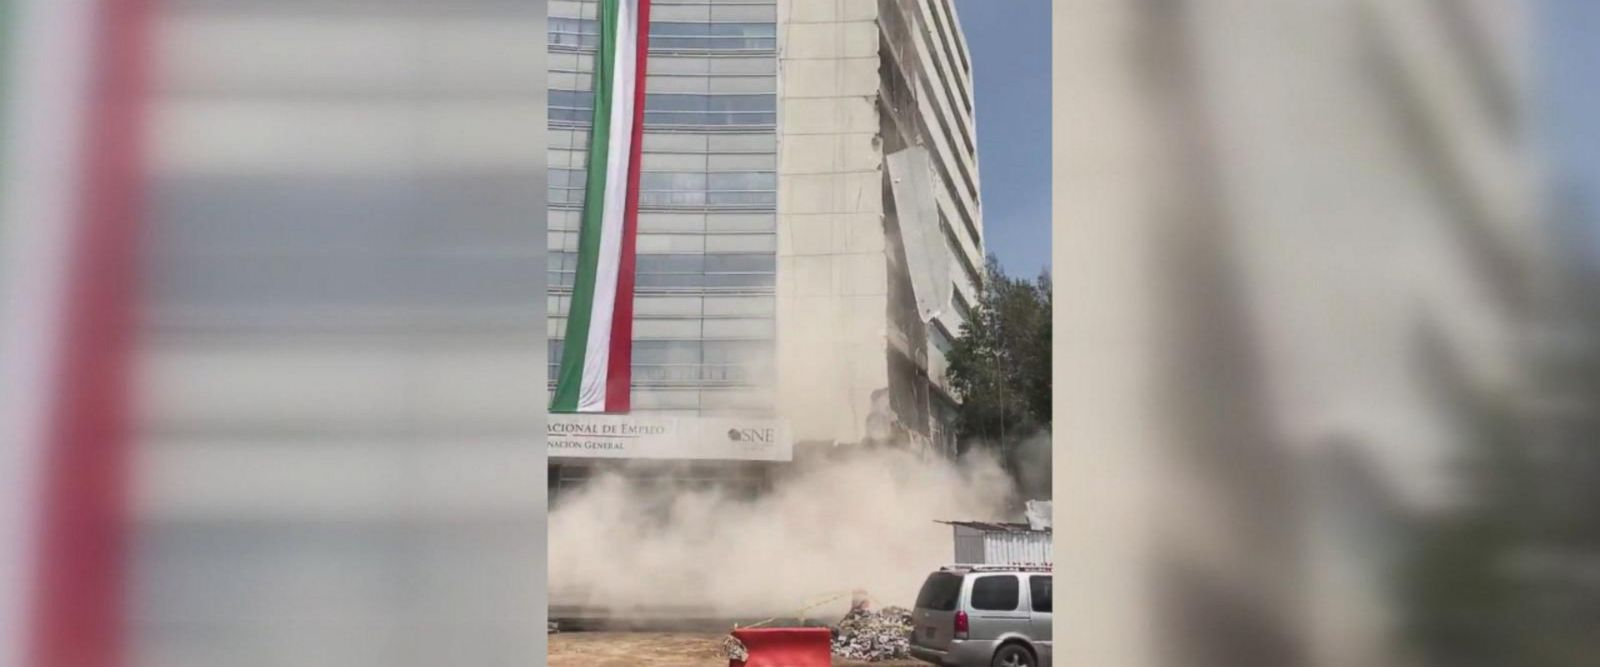 Part of a building's outer wall can be seen falling to the ground after Tuesday's earthquake.